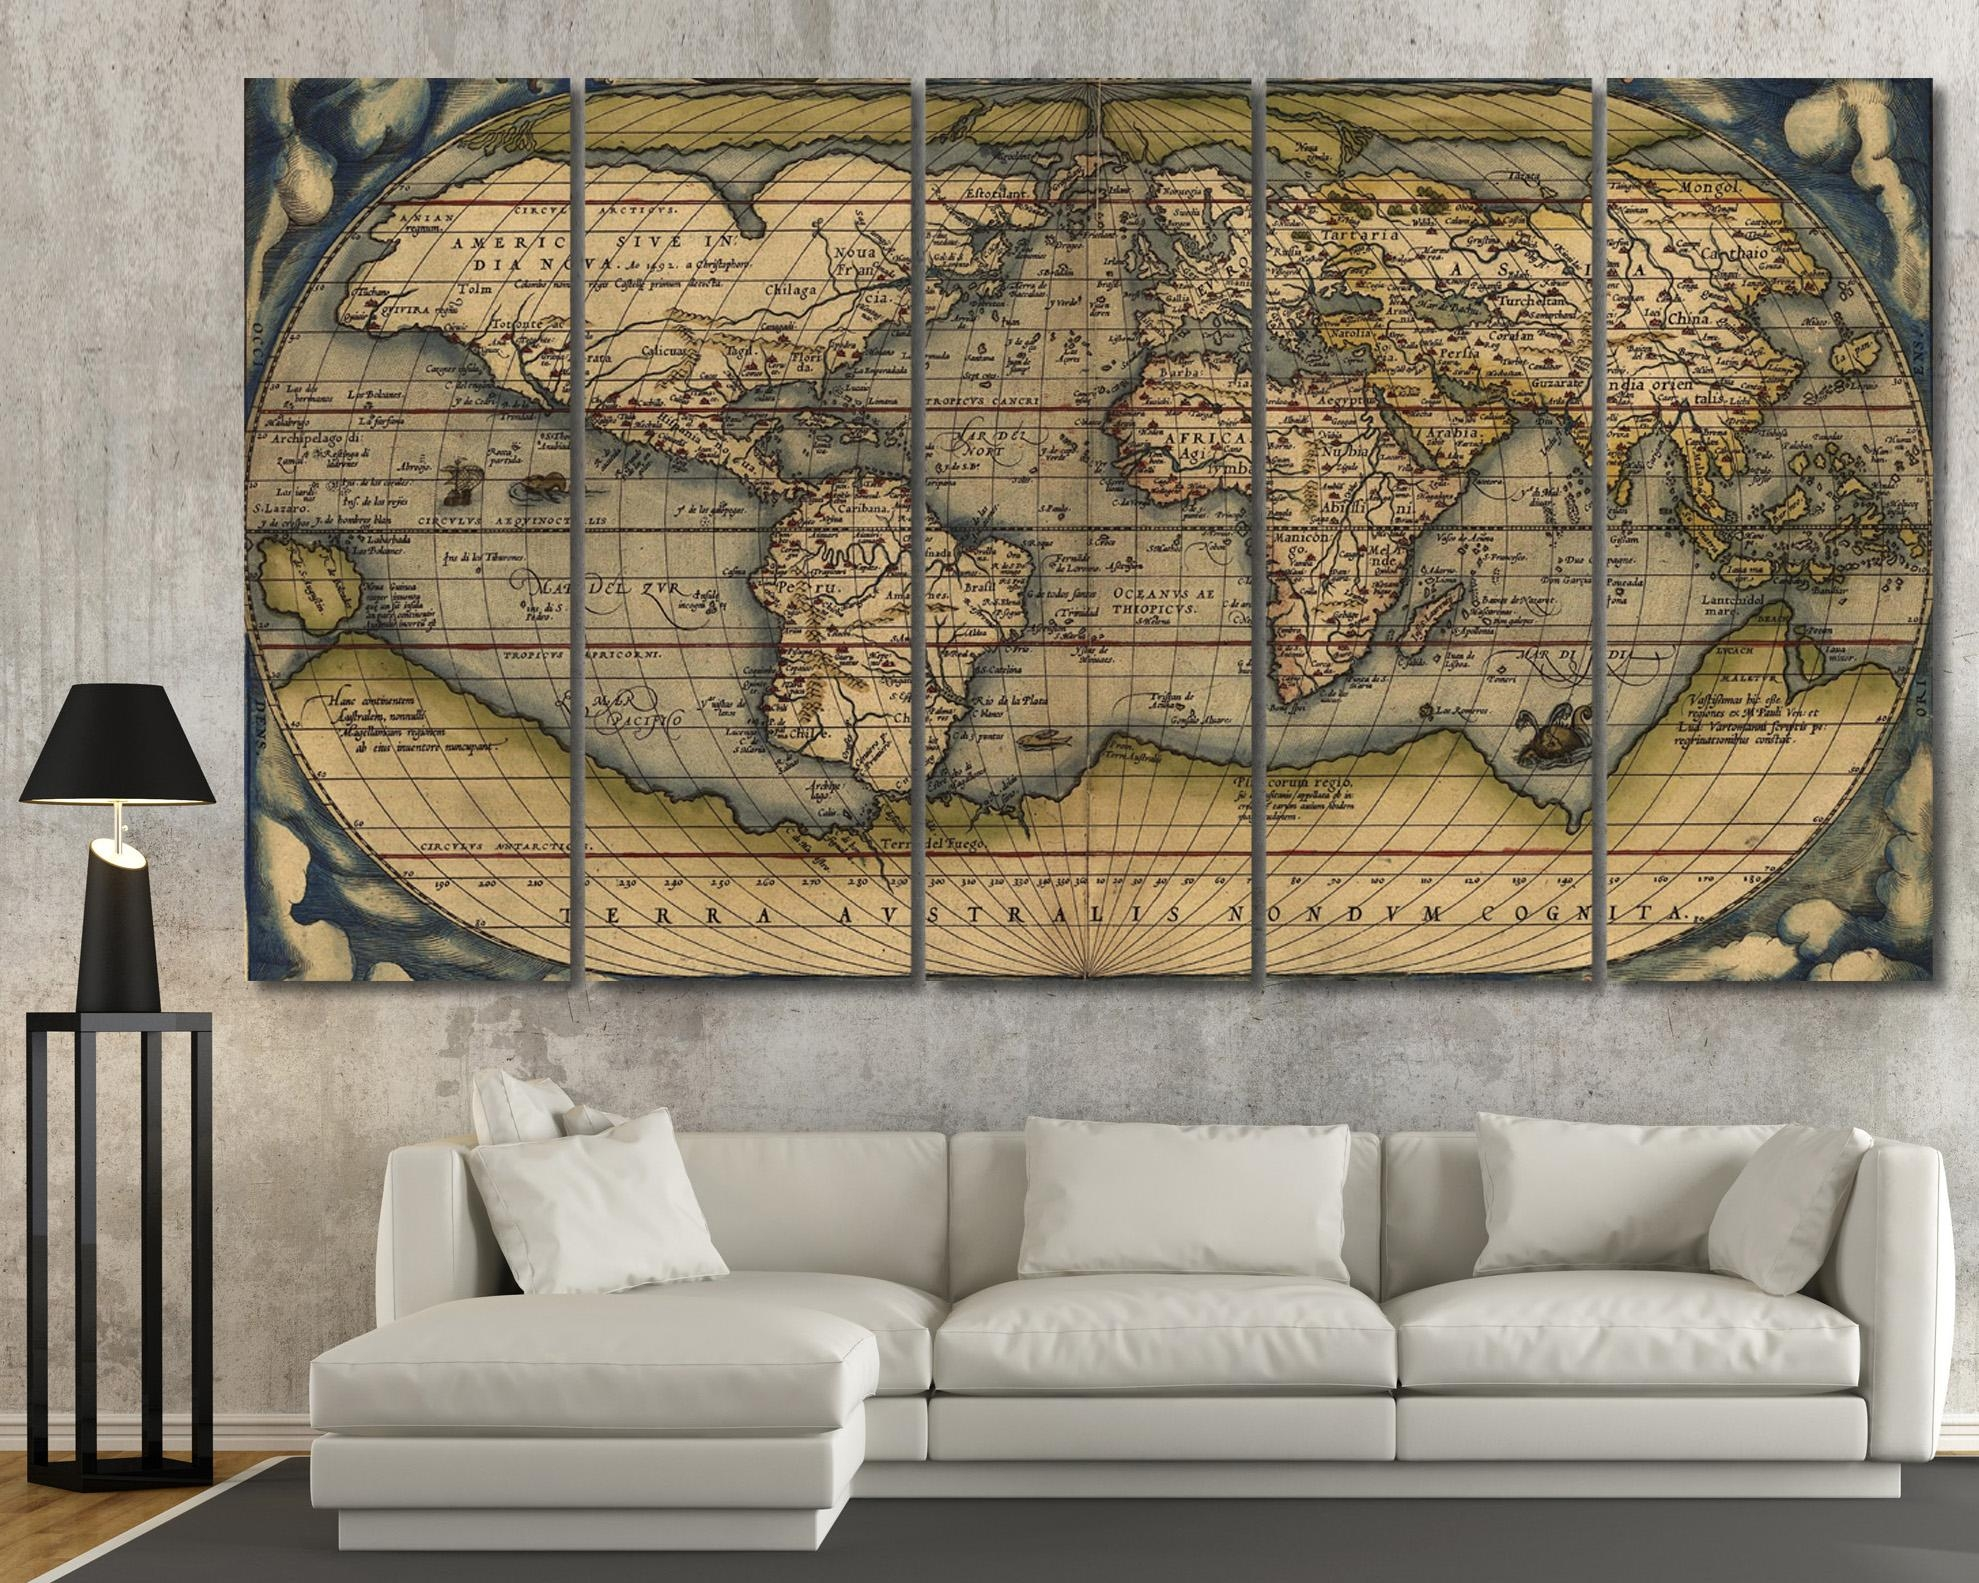 Large Vintage Wall Art Old World Map At Texelprintart For Old World Map Wall Art (Image 6 of 20)